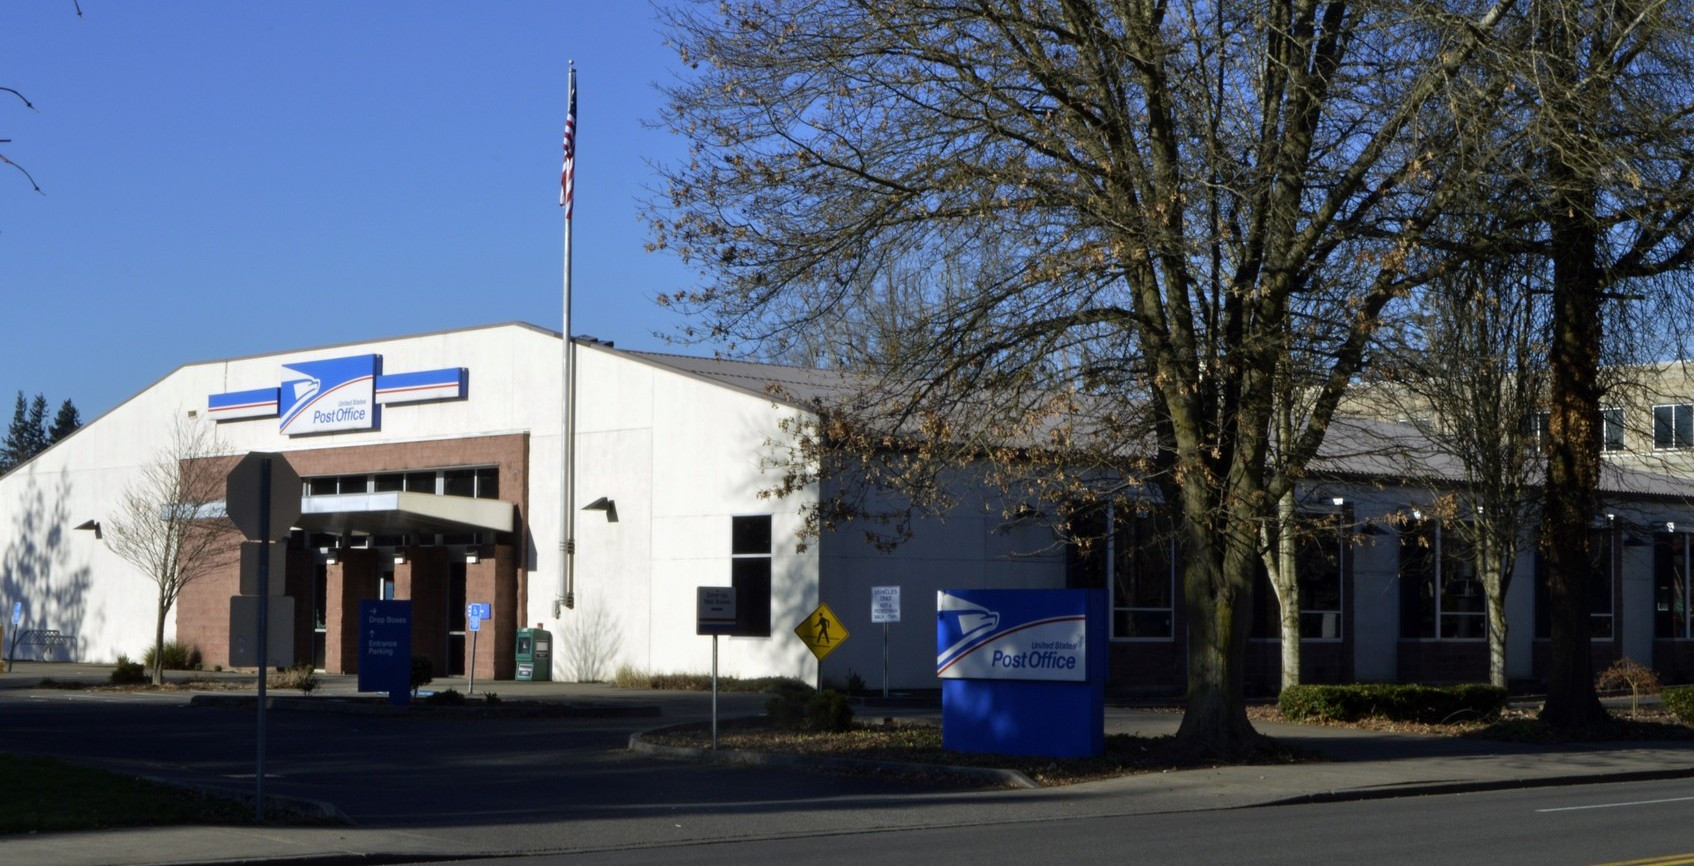 26-hillsboro-oregon-post-office-the-kelly-group-real-estate